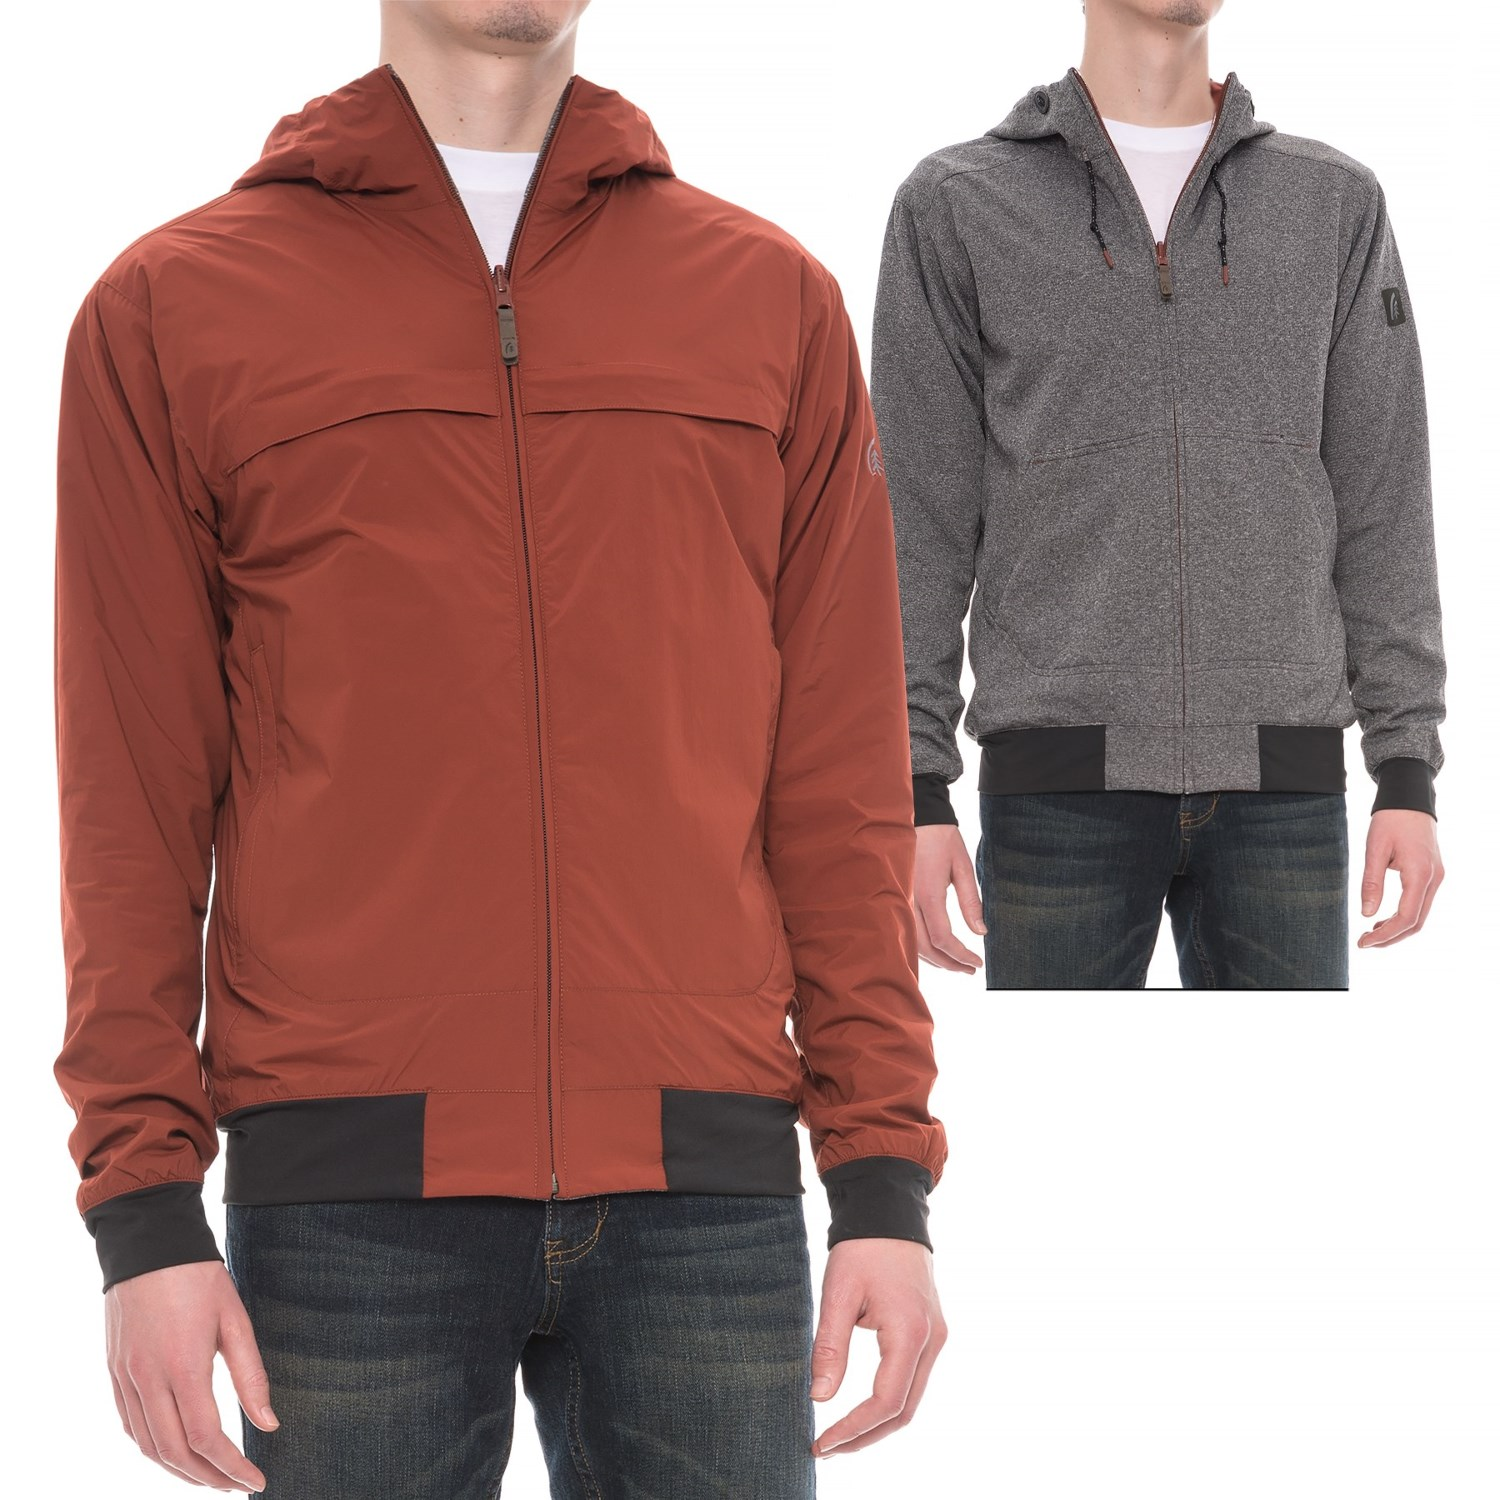 c27b88be4253a Sierra Designs Outside-In Hoodie (For Men) - Save 60%